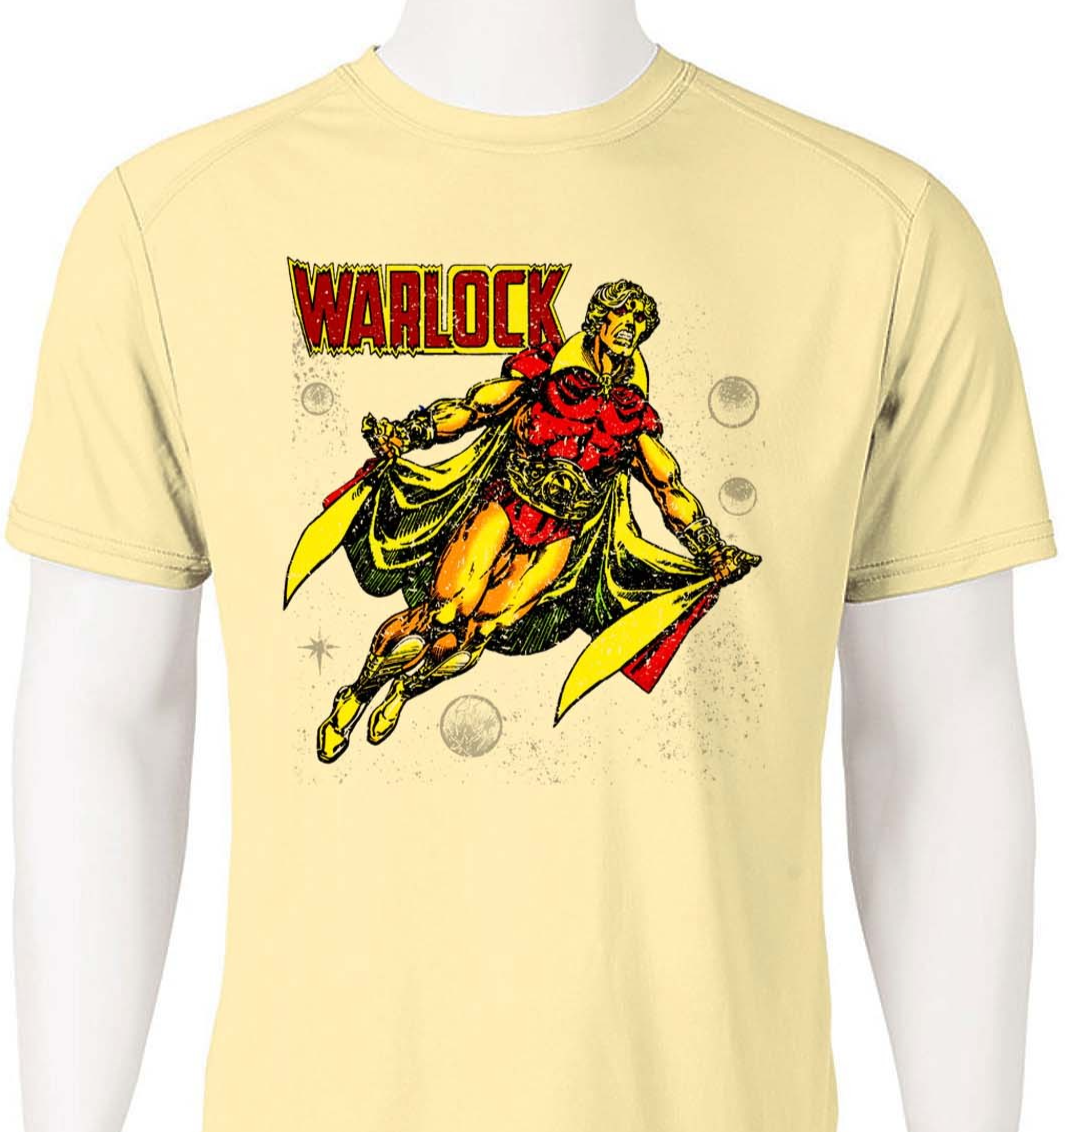 Adam Warlock Dri Fit T-shirt superhero moisture wick athletic graphic tee